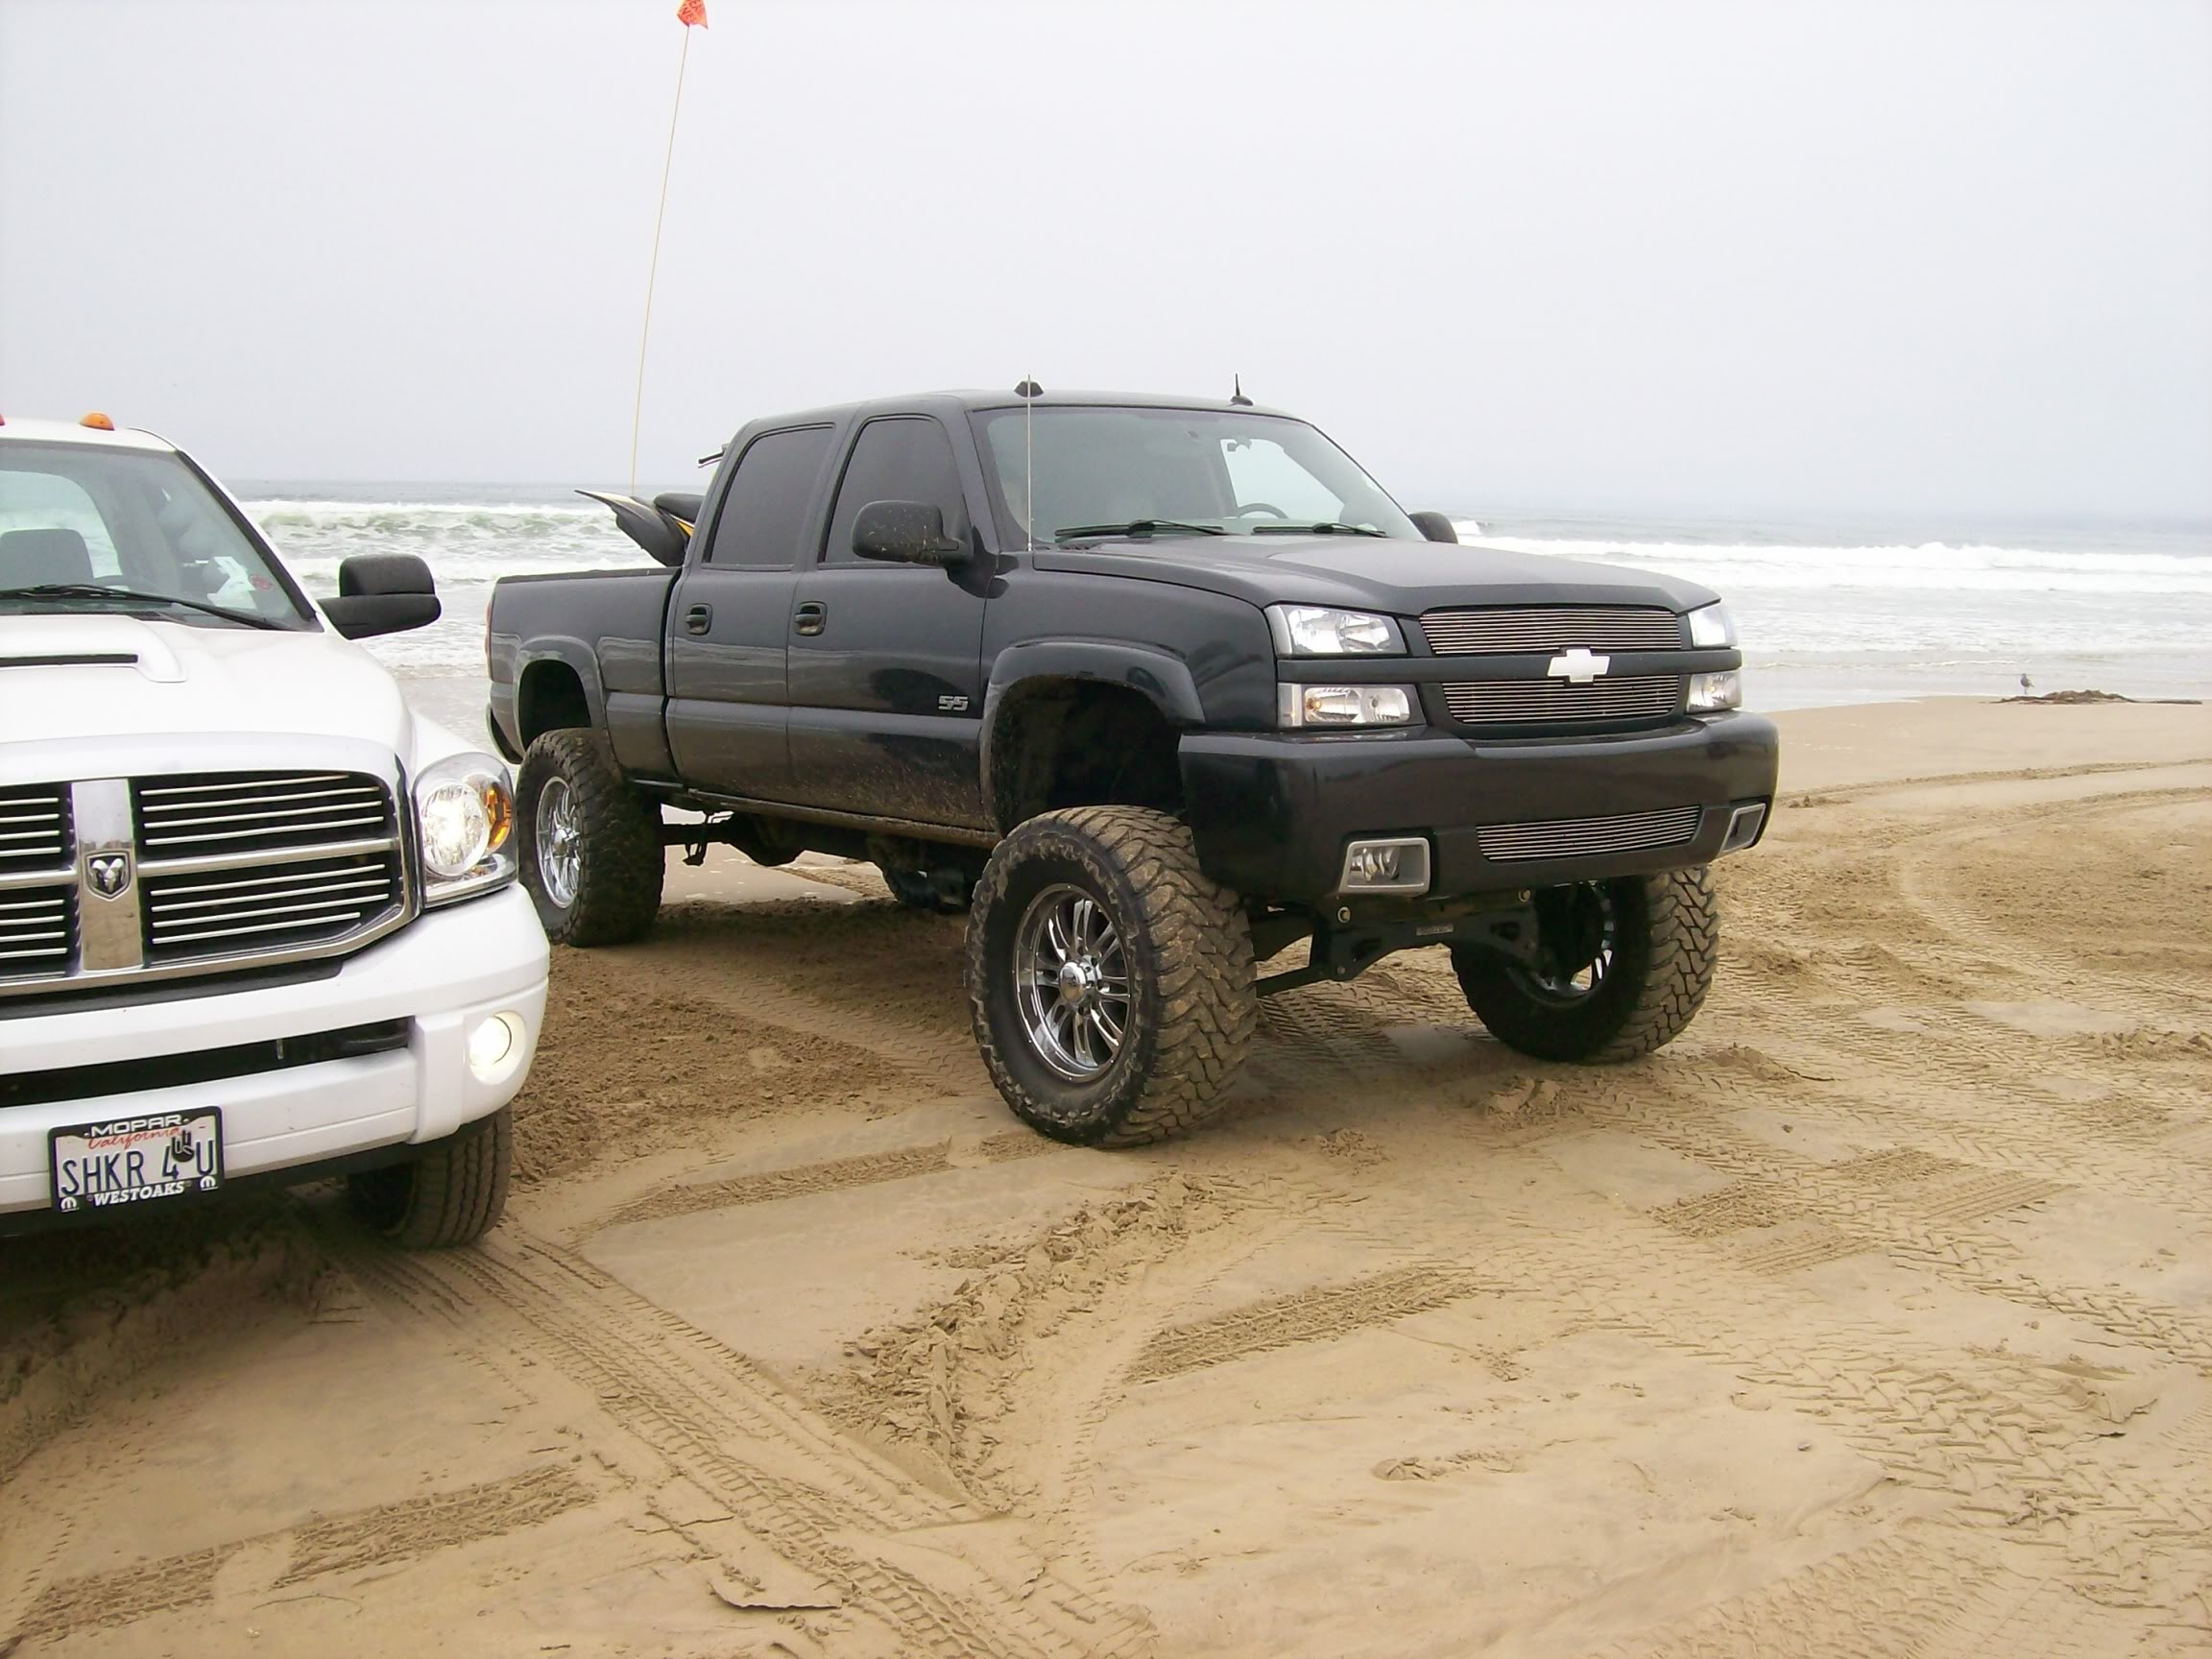 maxfairbanks 2005 chevrolet silverado 1500 regular cab specs photos modification info at cardomain. Black Bedroom Furniture Sets. Home Design Ideas